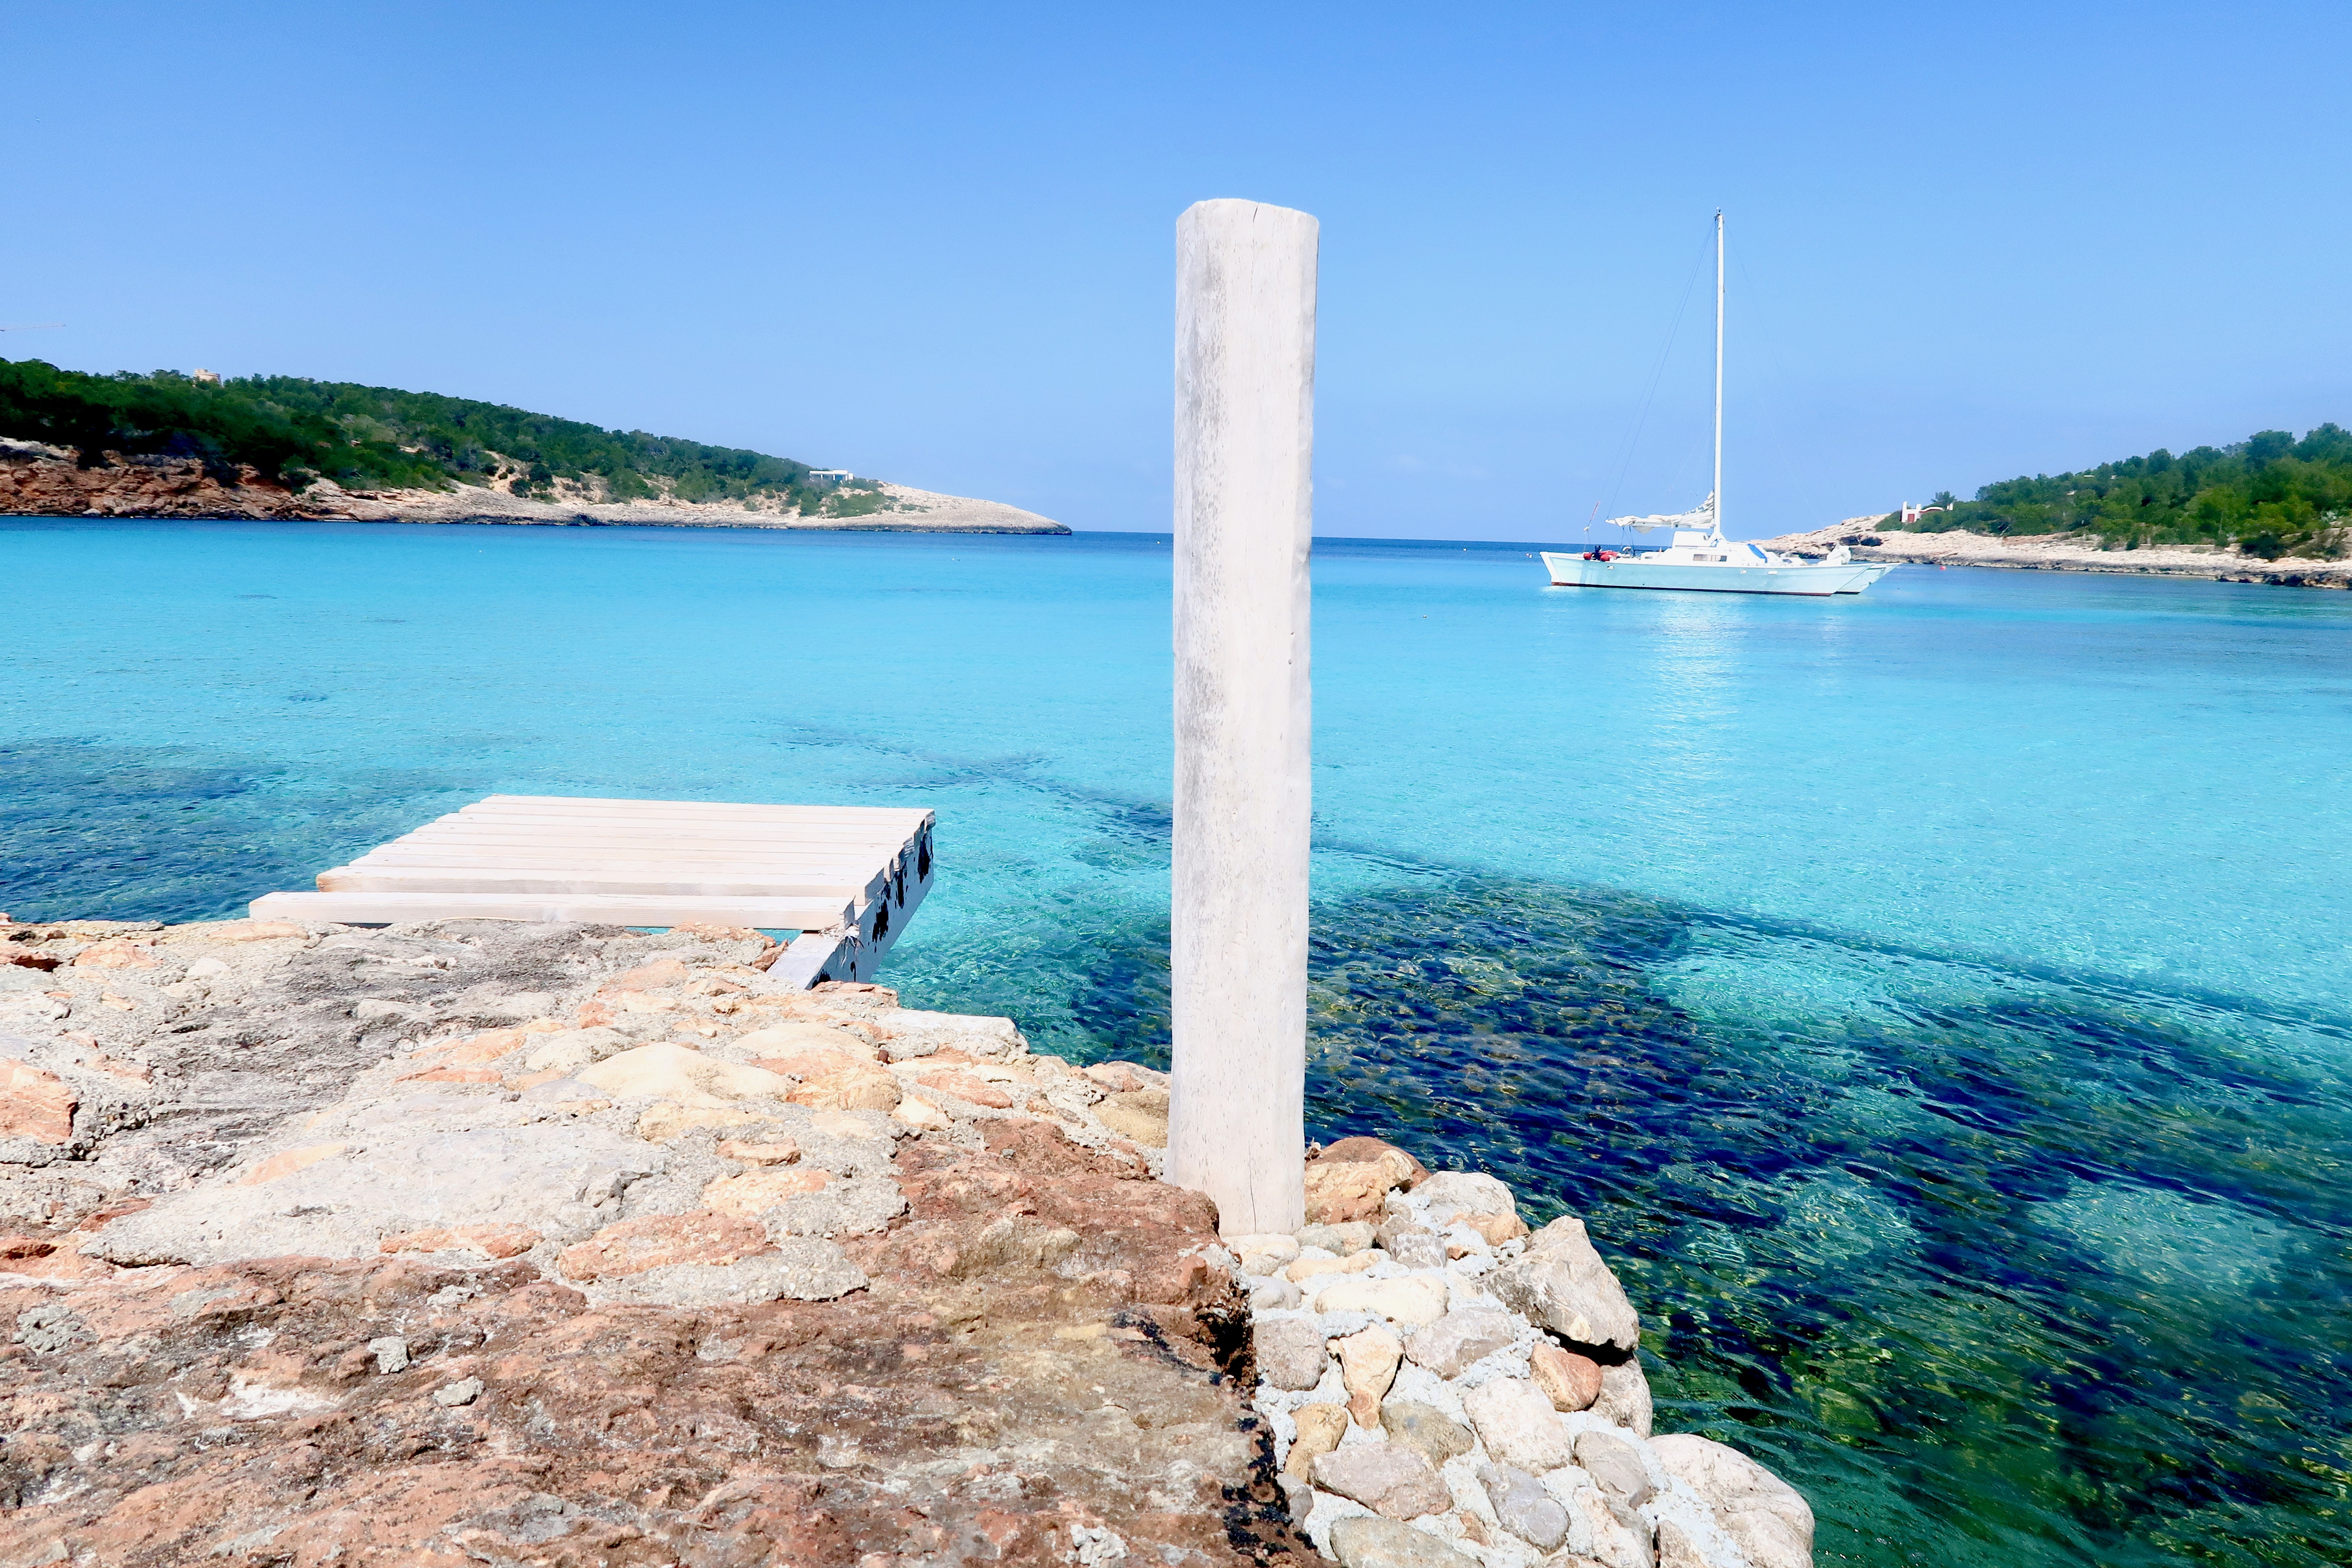 Wanderlust - where can I relax in Ibiza? Portinatx is a gorgeous town in the north of Ibiza and perfect for grabbing Instagram grid images of envy | Travel tips | Elle Blonde Luxury Lifestyle Destination Blog